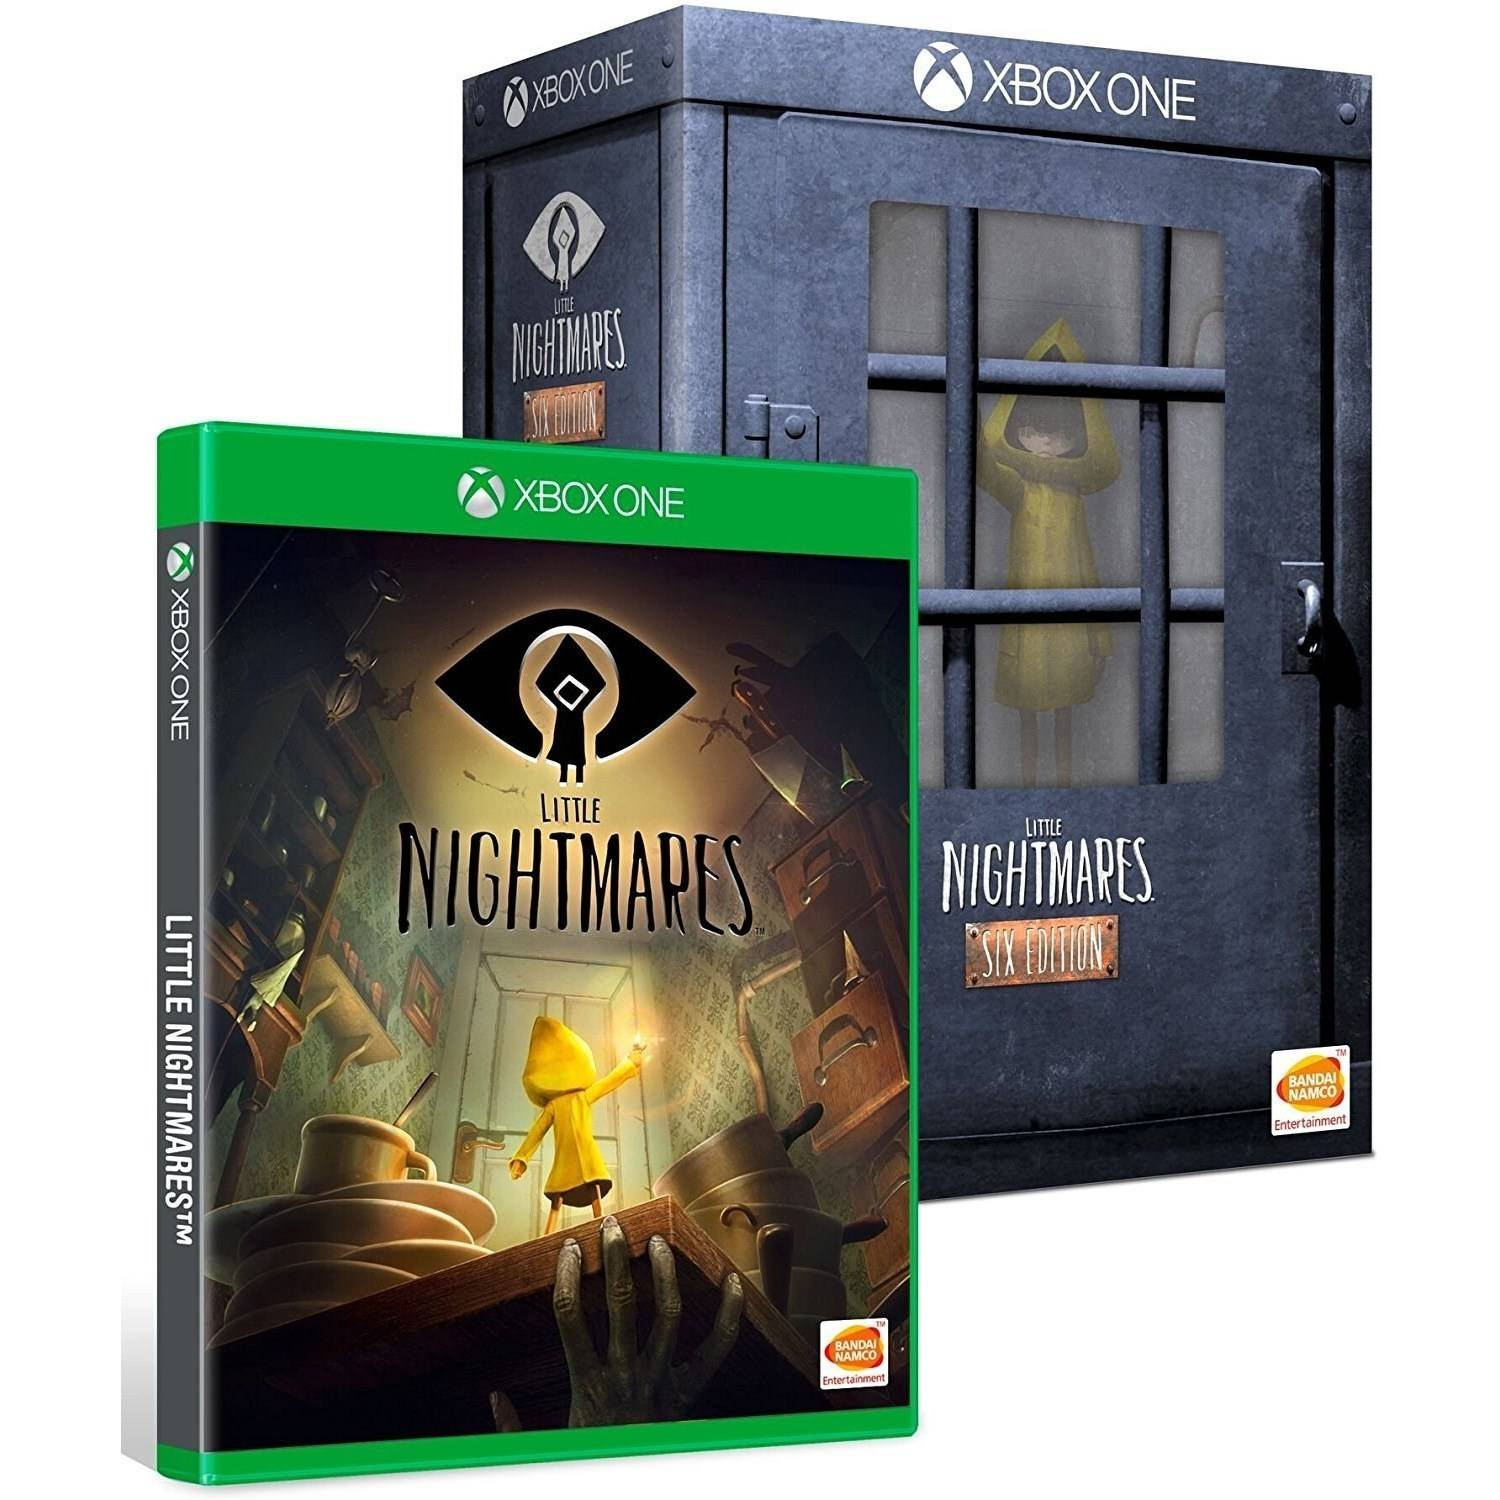 Little Nightmares: Six Edition (Xbox One)